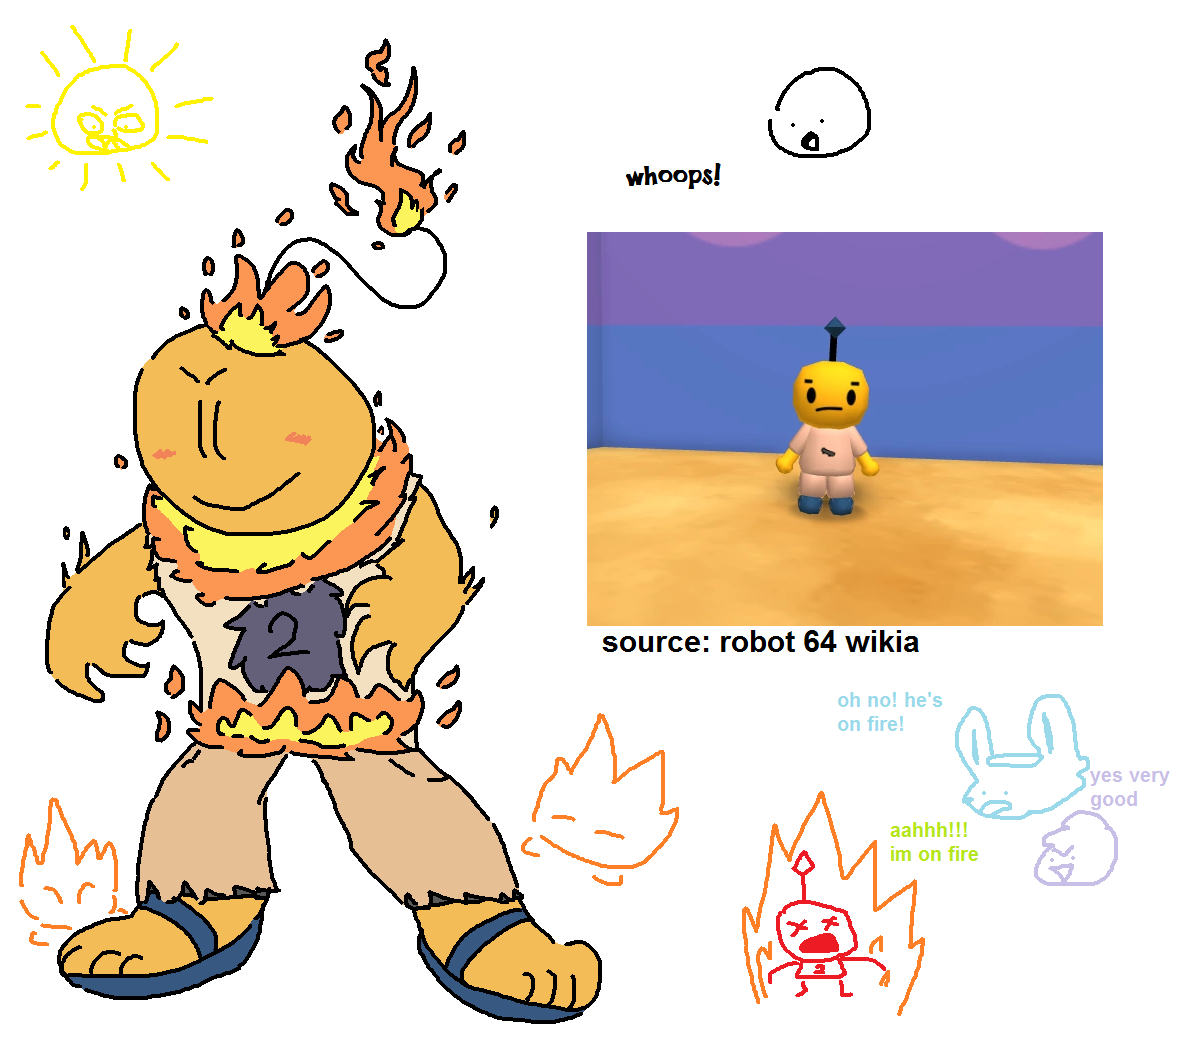 Games Like Robot 64 Roblox Hecklands Beebo By Pomatia Blox On Deviantart